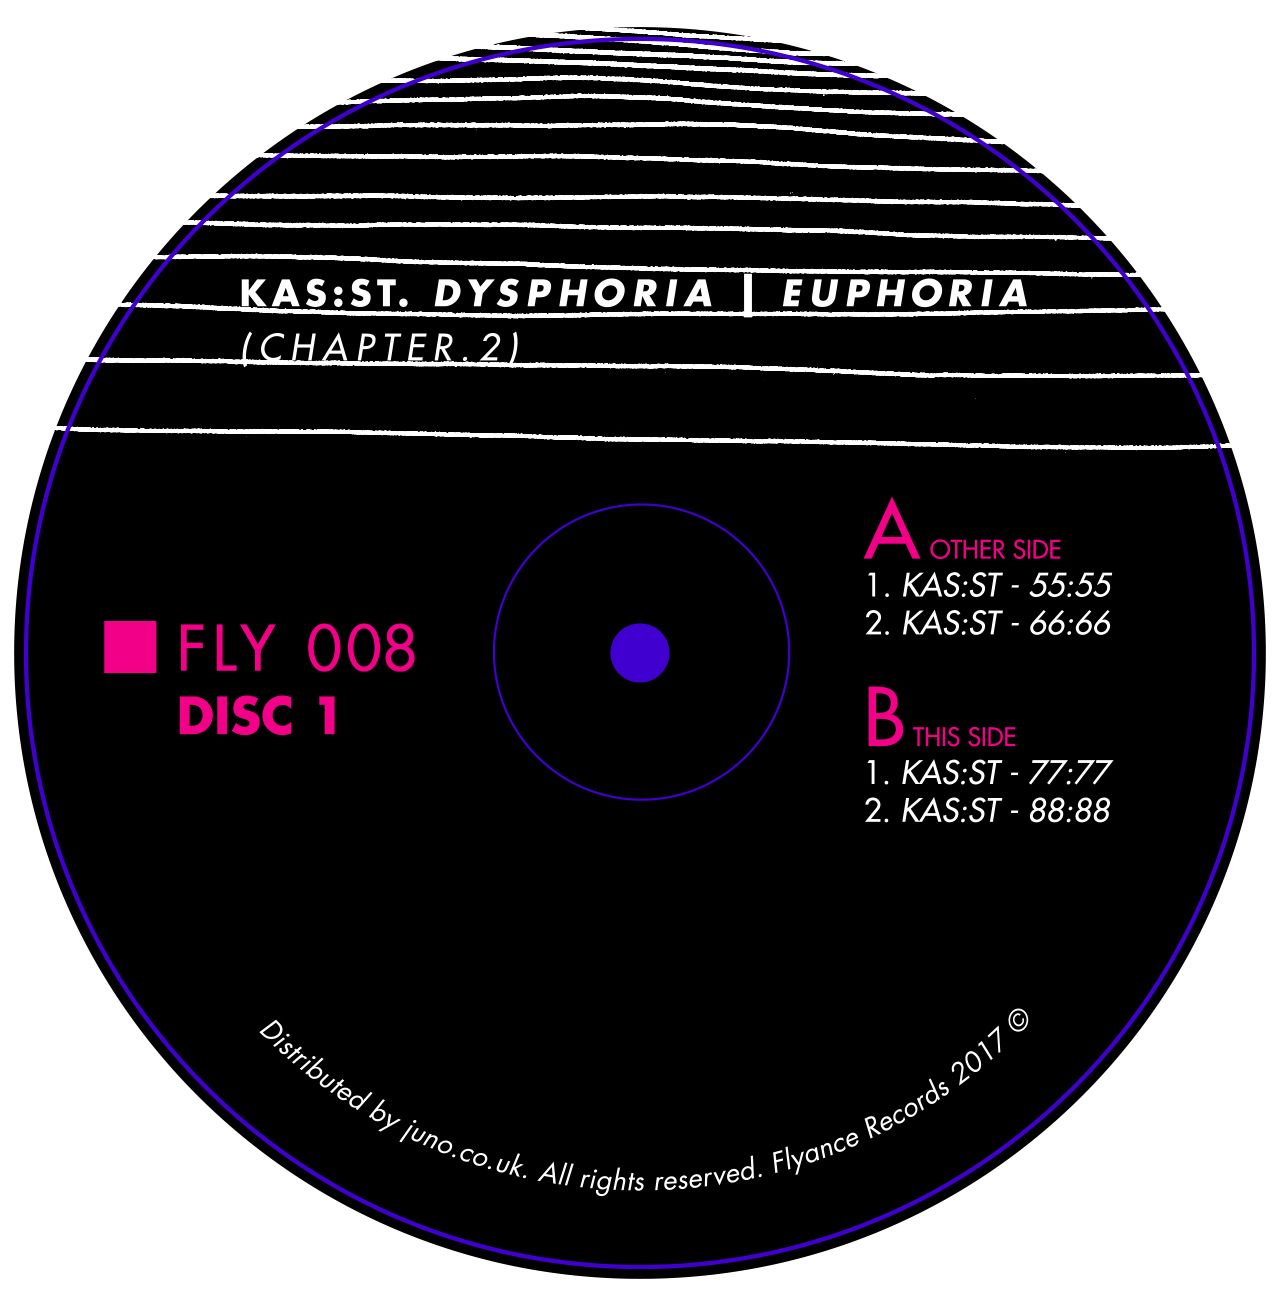 Fly008.TRZ_ Gatefold Sleeve 6mm SpineA